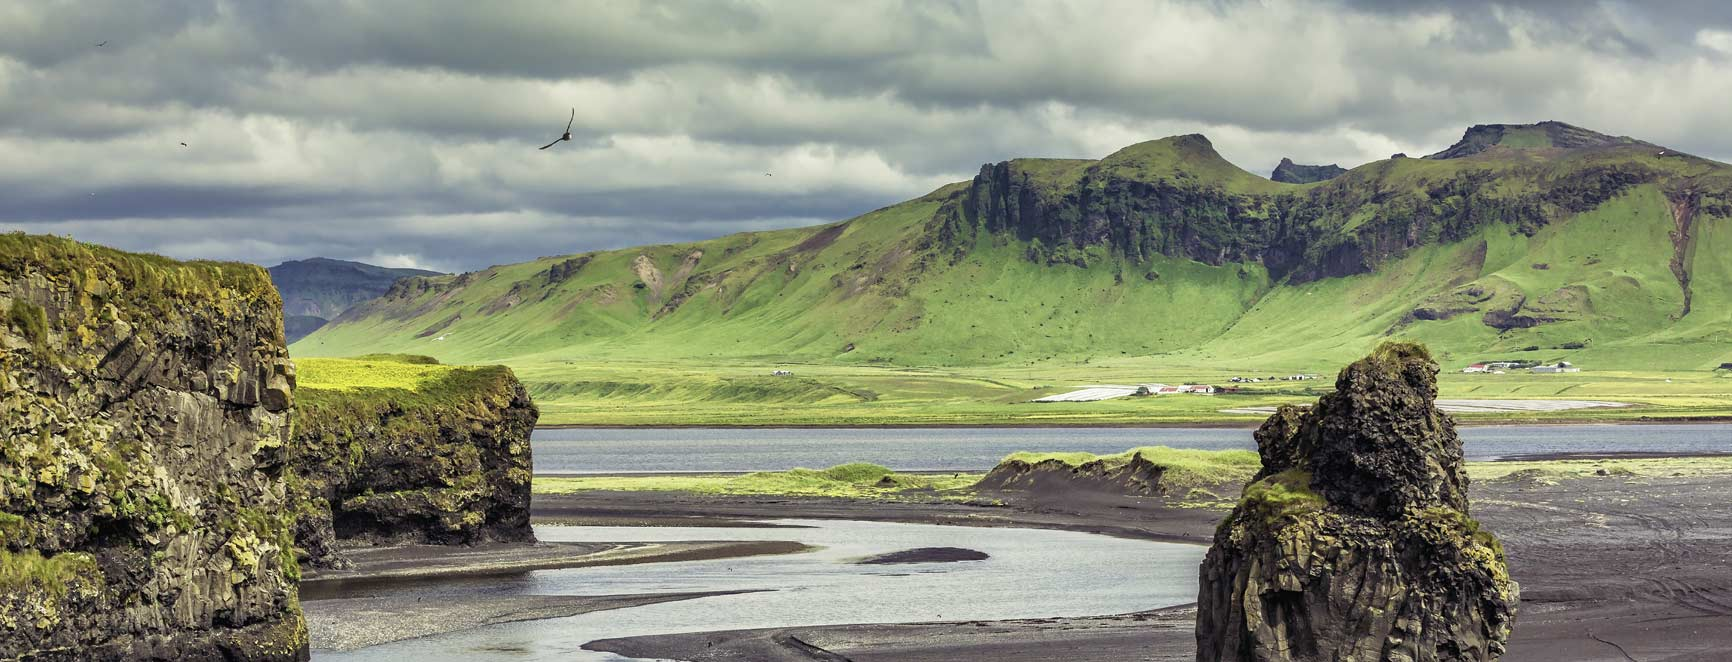 Iceland_Daily_Bliss_Yoga_Dyrholaey